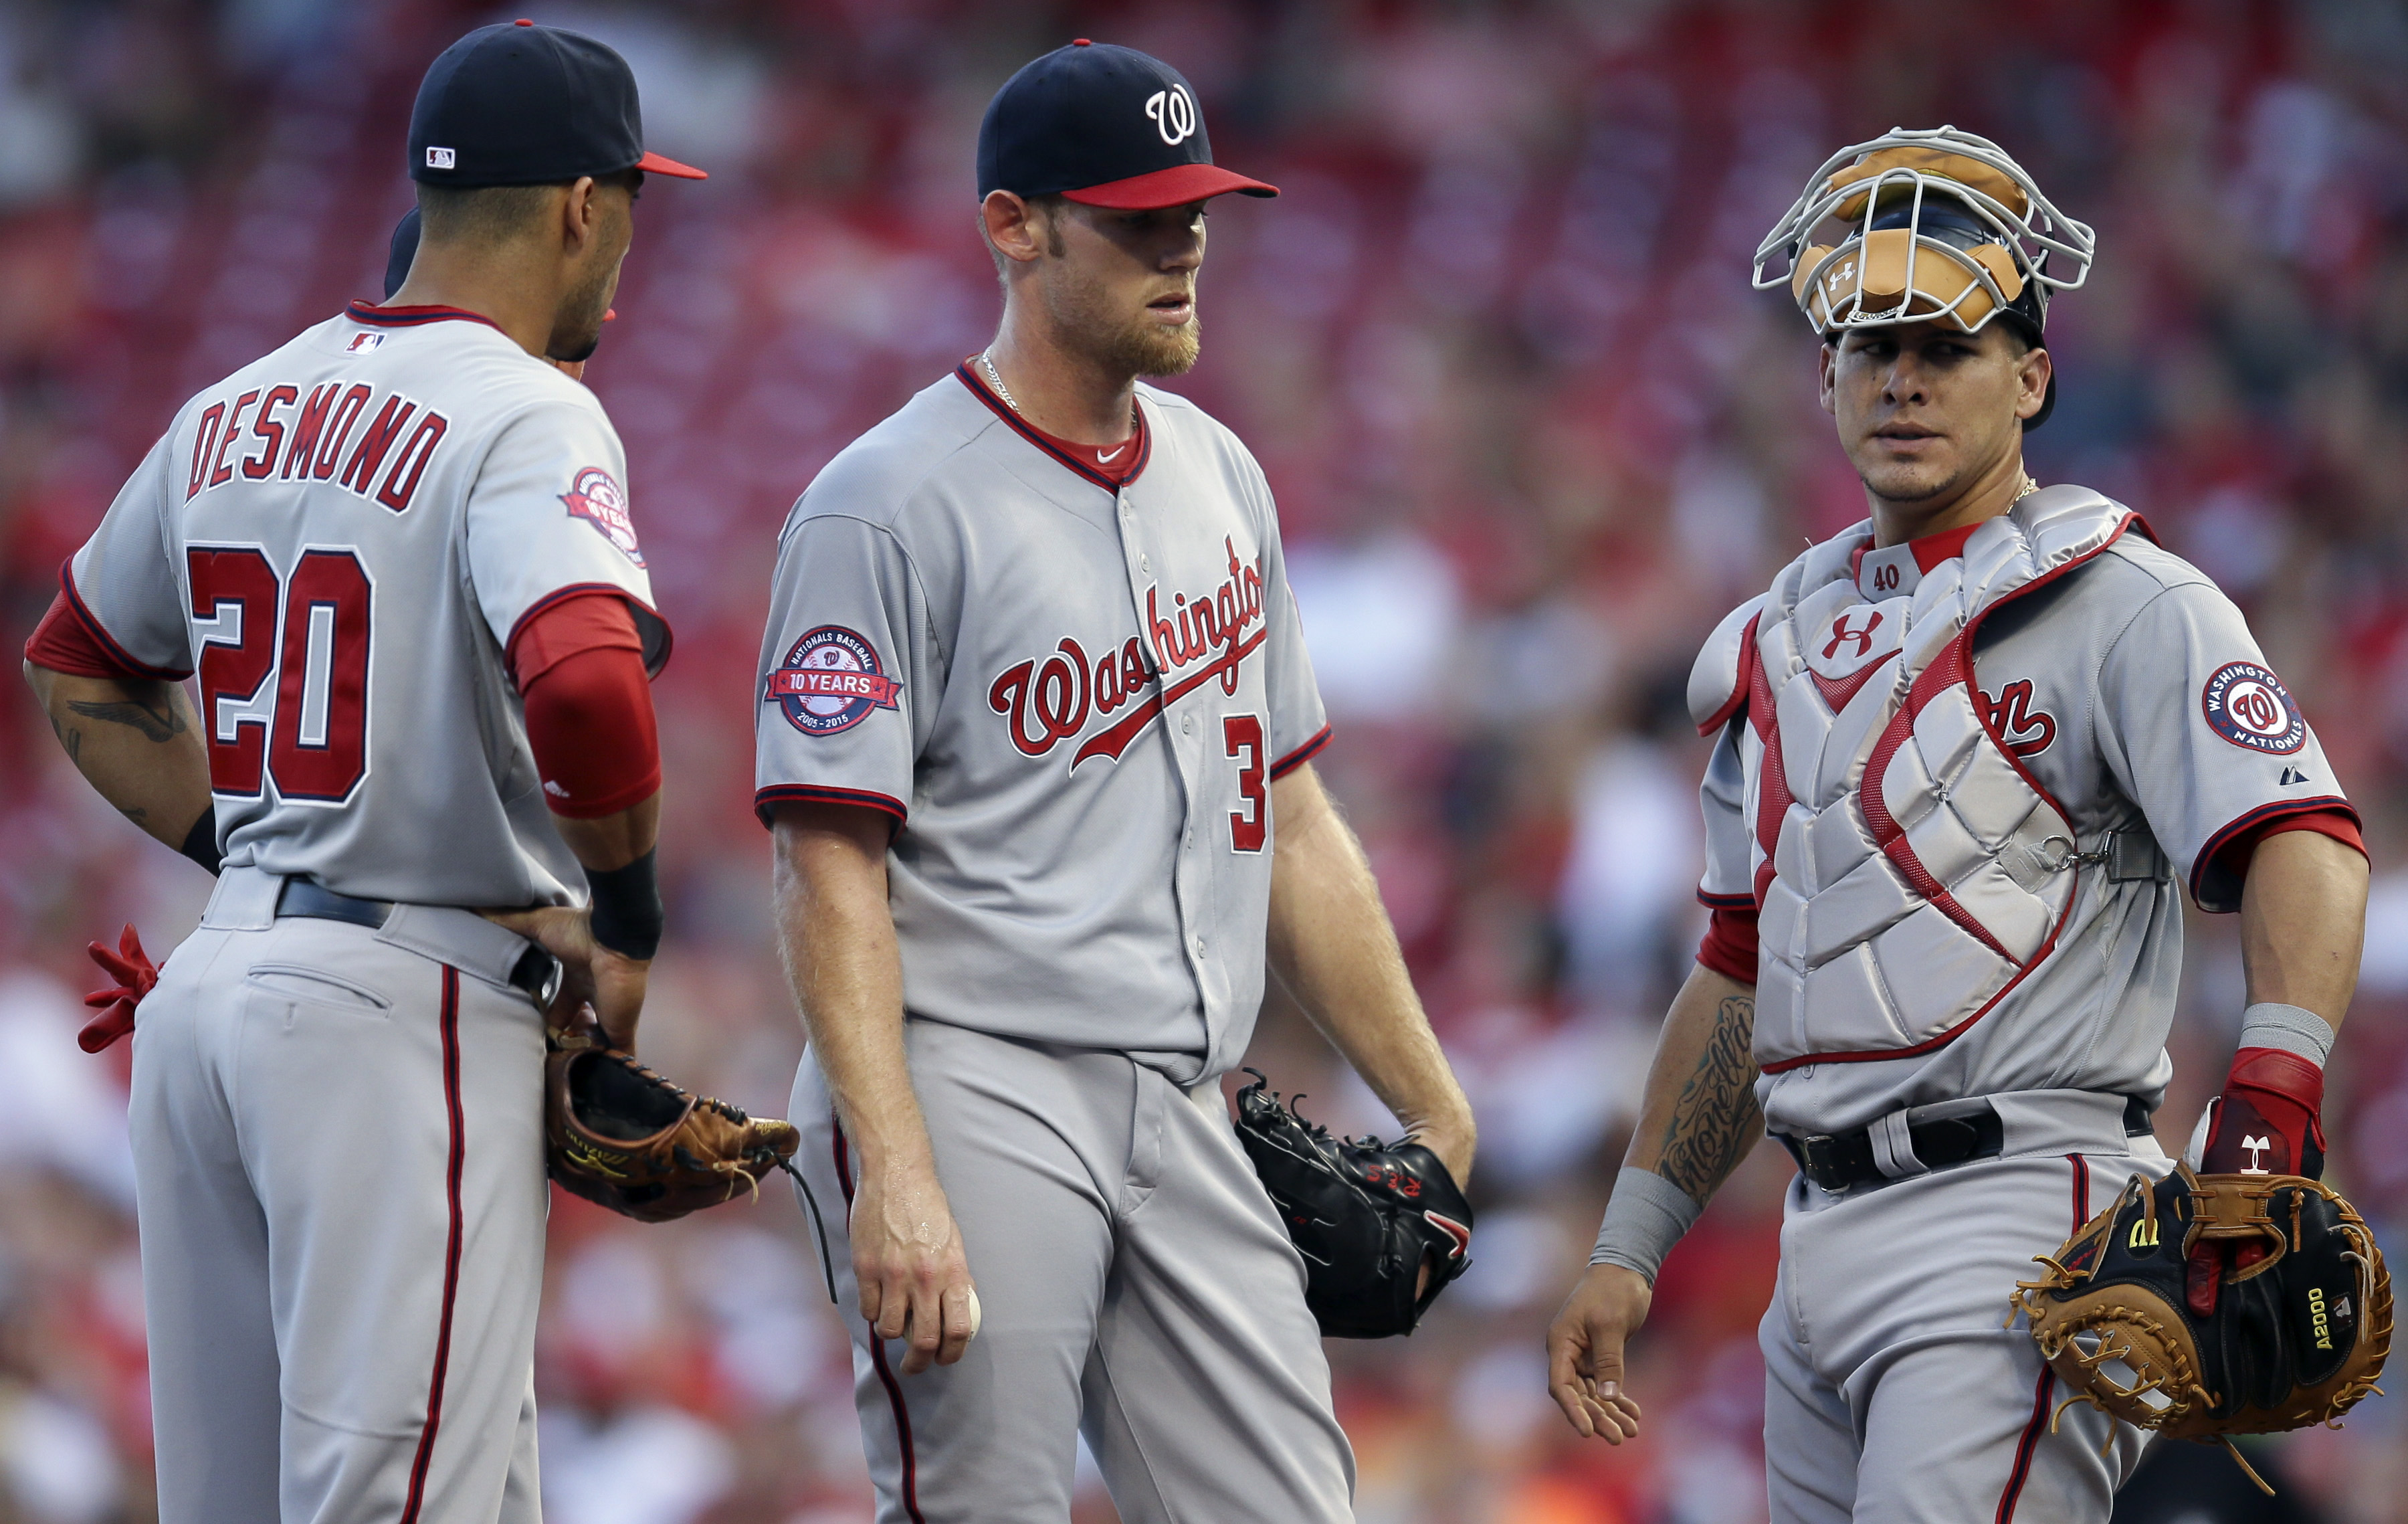 Washington Nationals starting pitcher Stephen Strasburg, center, stands on the mound alongside shortstop Ian Desmond (20) and catcher Wilson Ramos in the second inning of a baseball game against the Cincinnati Reds, Friday, May 29, 2015, in Cincinnati. (A